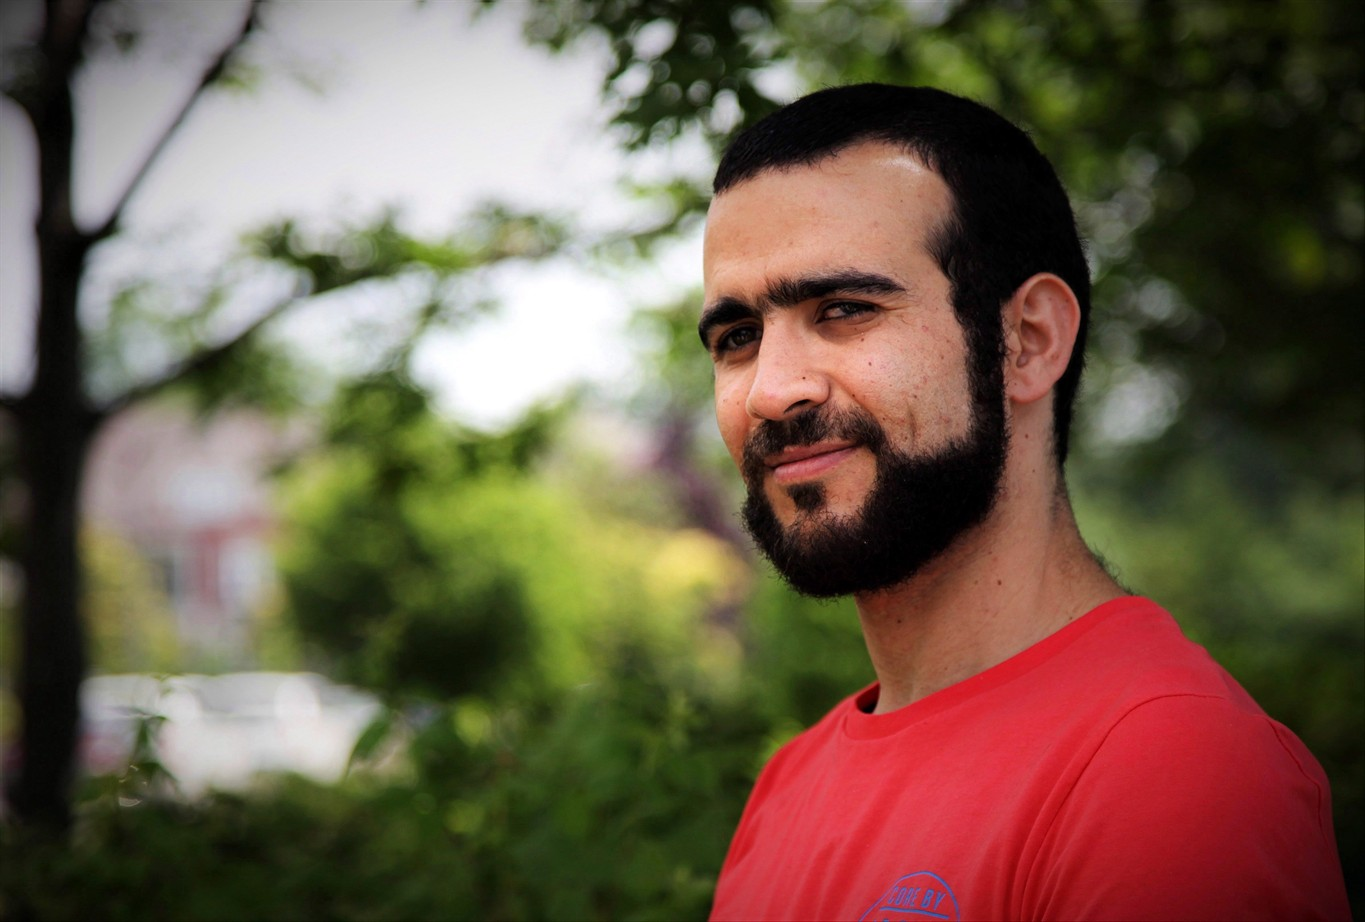 Omar Khadr fights attempt by soldier's widow to freeze his assets